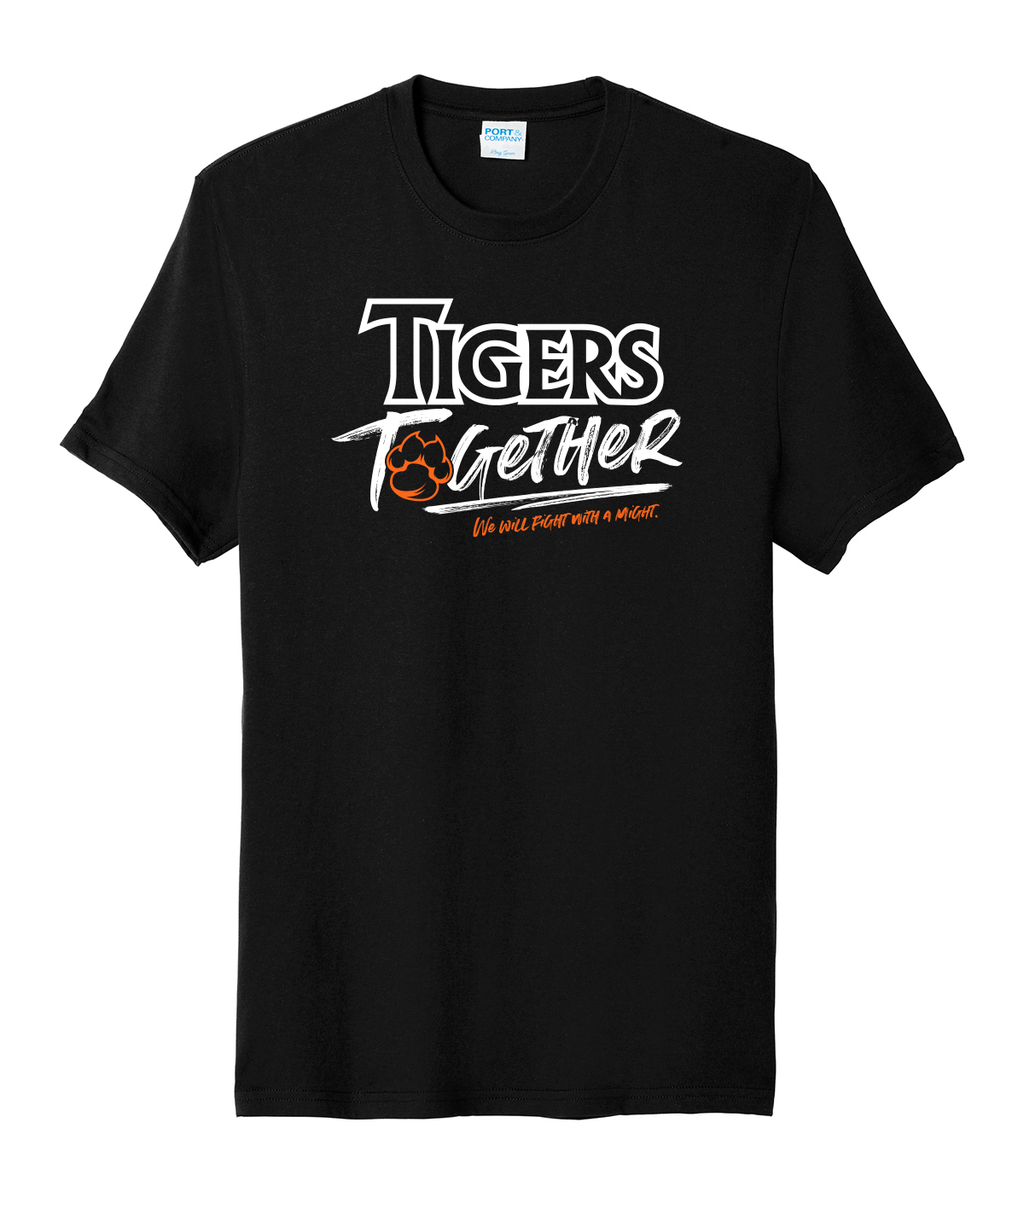 Tigers Together Adult Black Softstyle Tee